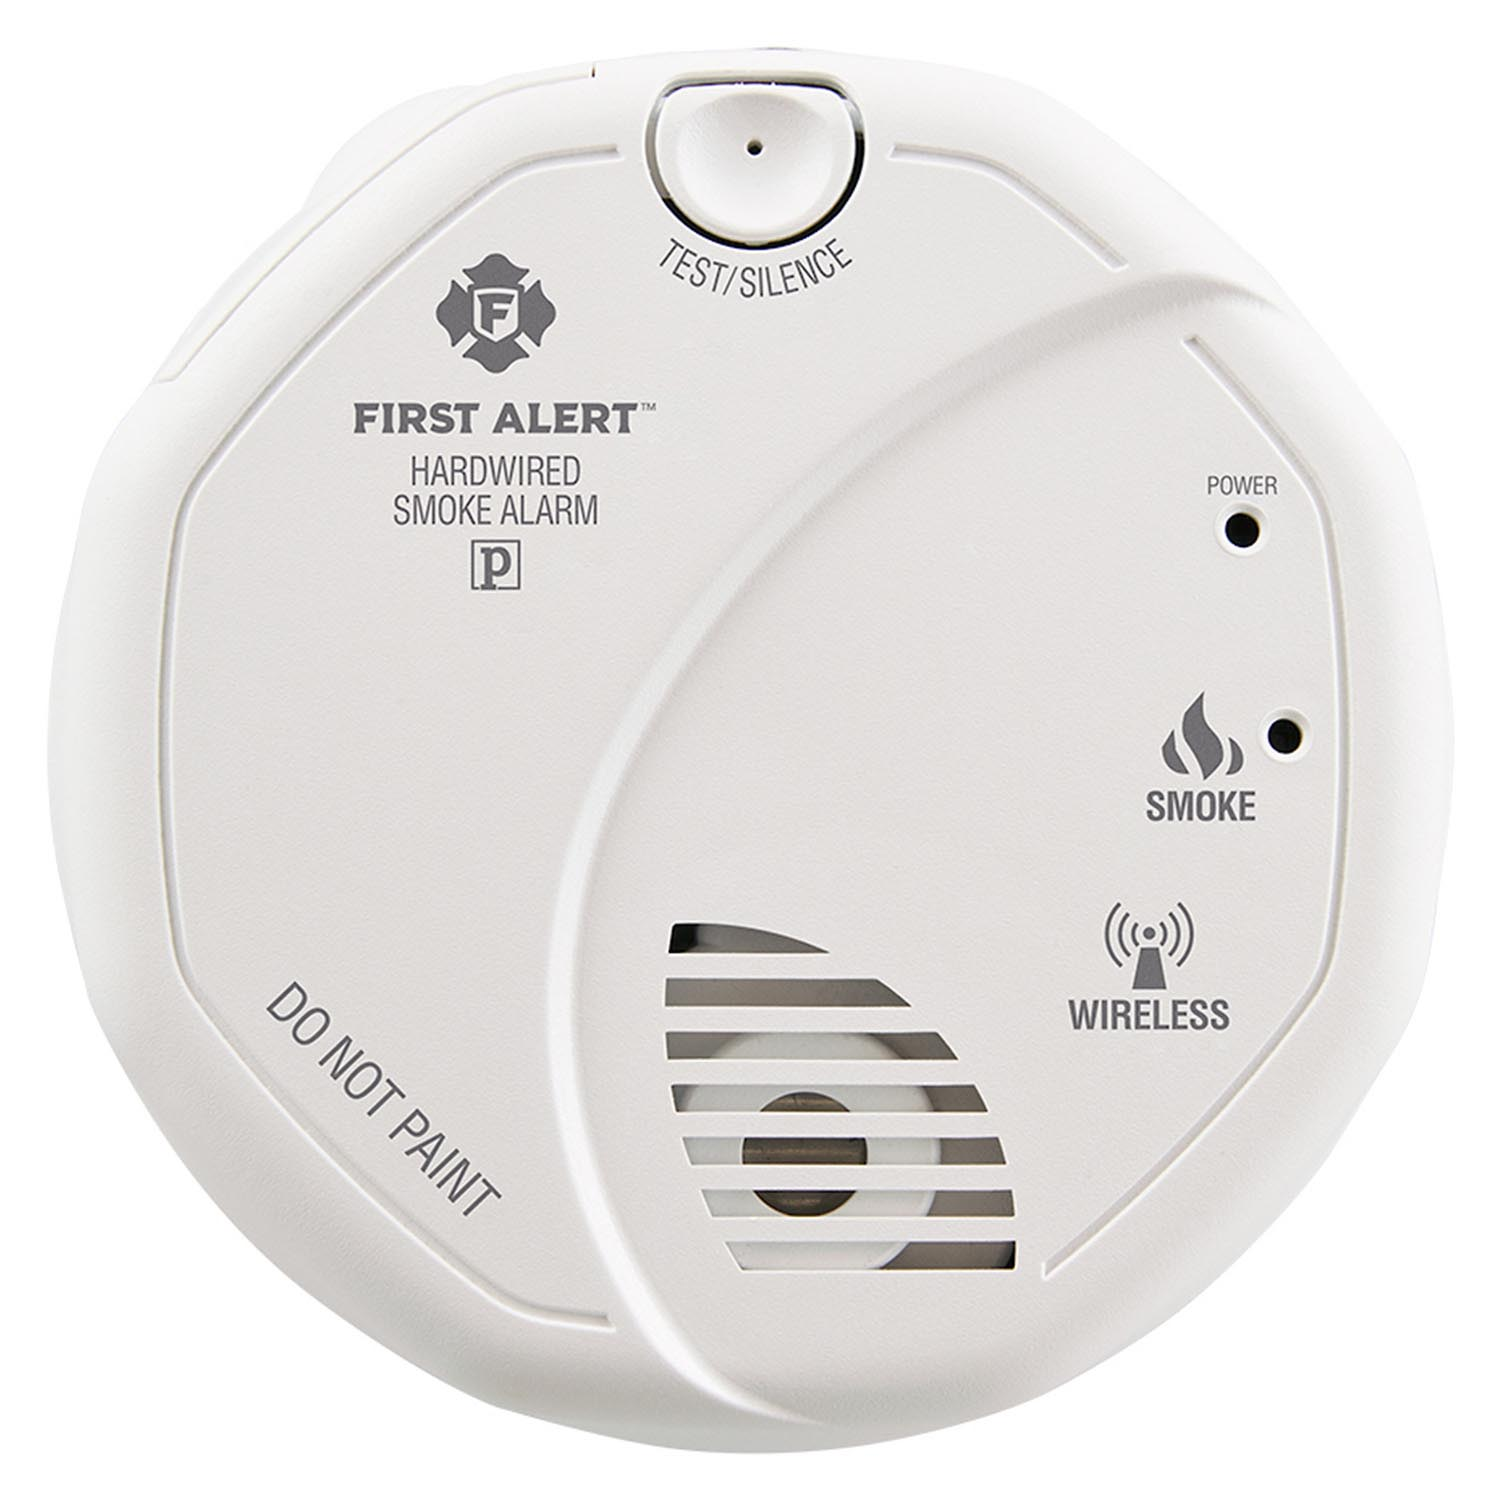 first alert sacn st wireless interconnect hardwired smoke first alert wireless interconnect hardwired smoke alarm